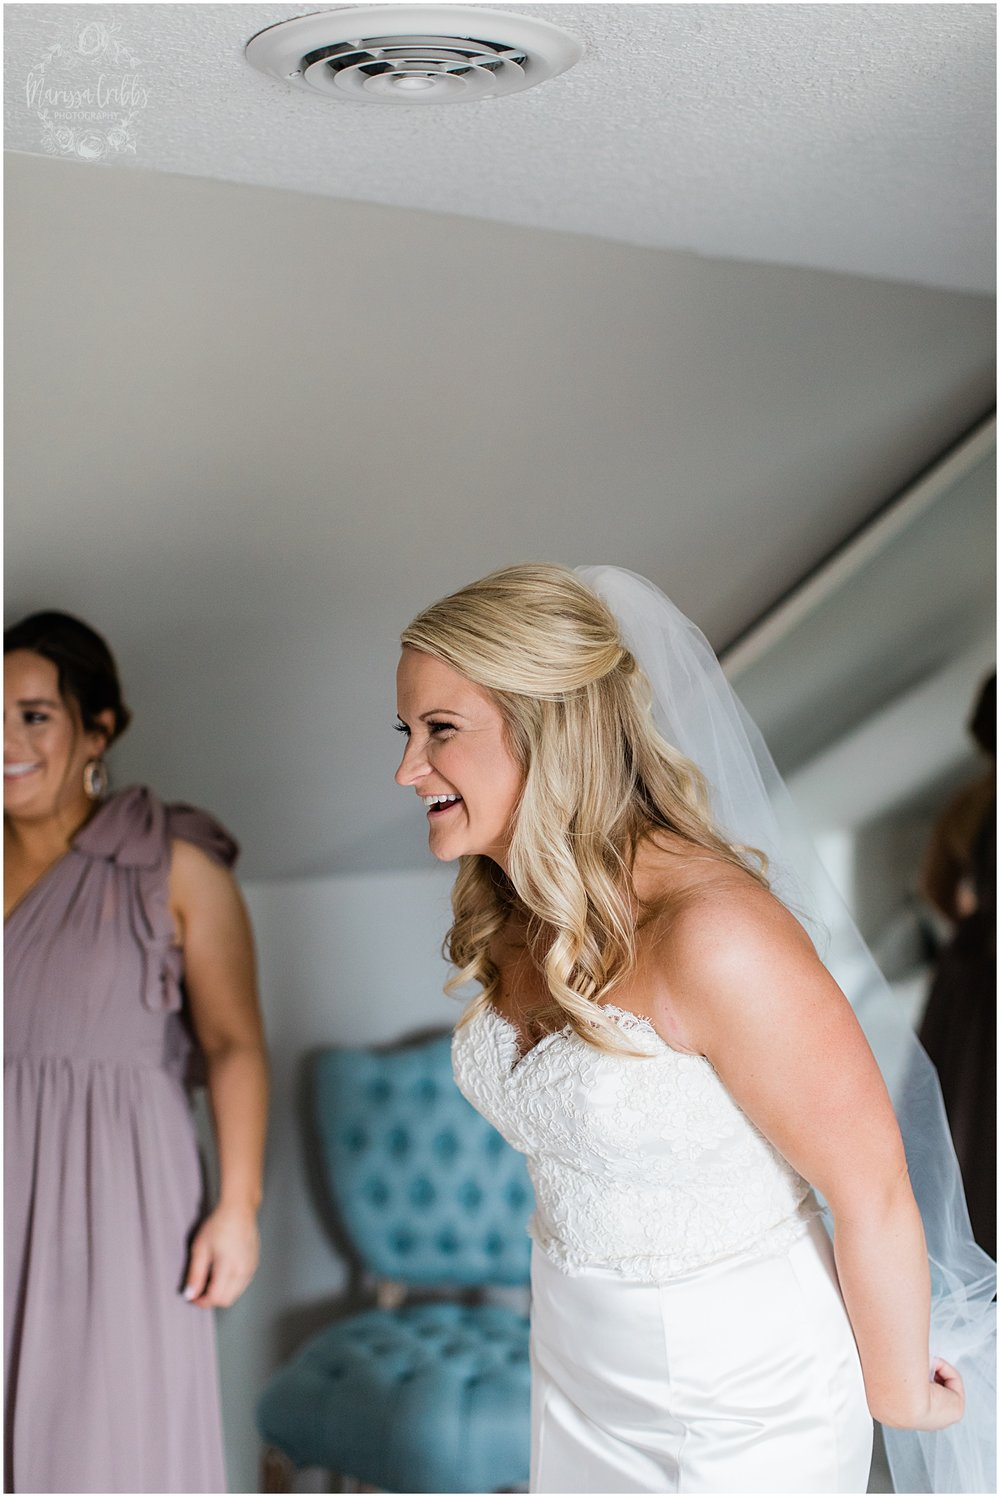 TILSON WEDDING | THE LEGACY AT GREEN HILLS | SIMPLE ELEGANCE | MARISSA CRIBBS PHOTOGRAPHY_4682.jpg